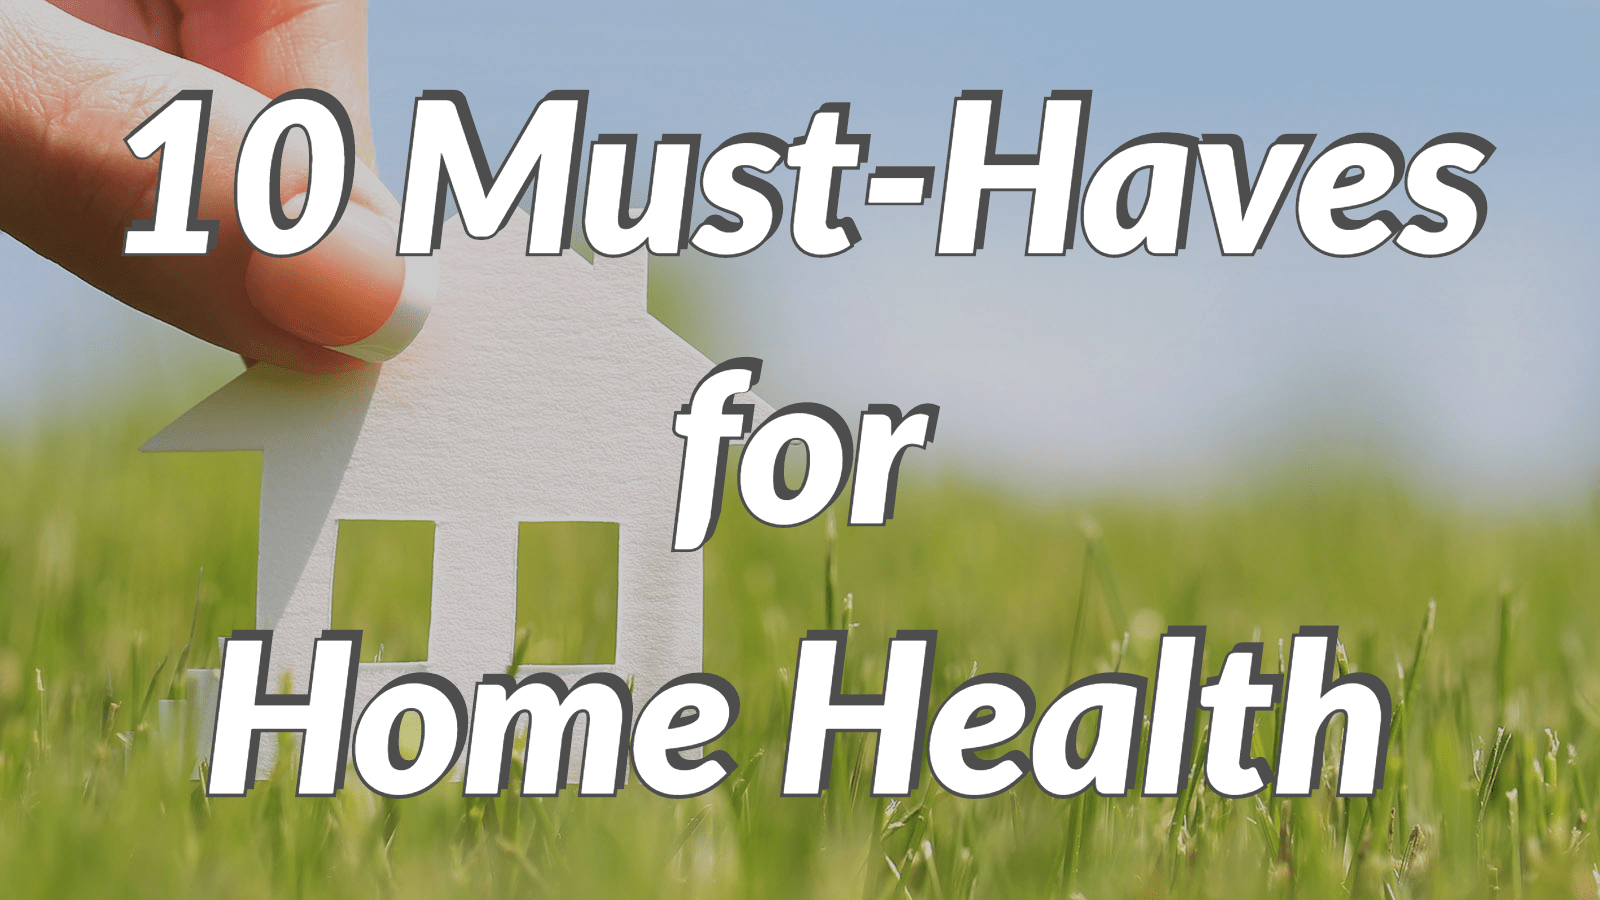 ot-home-health-must-haves-main